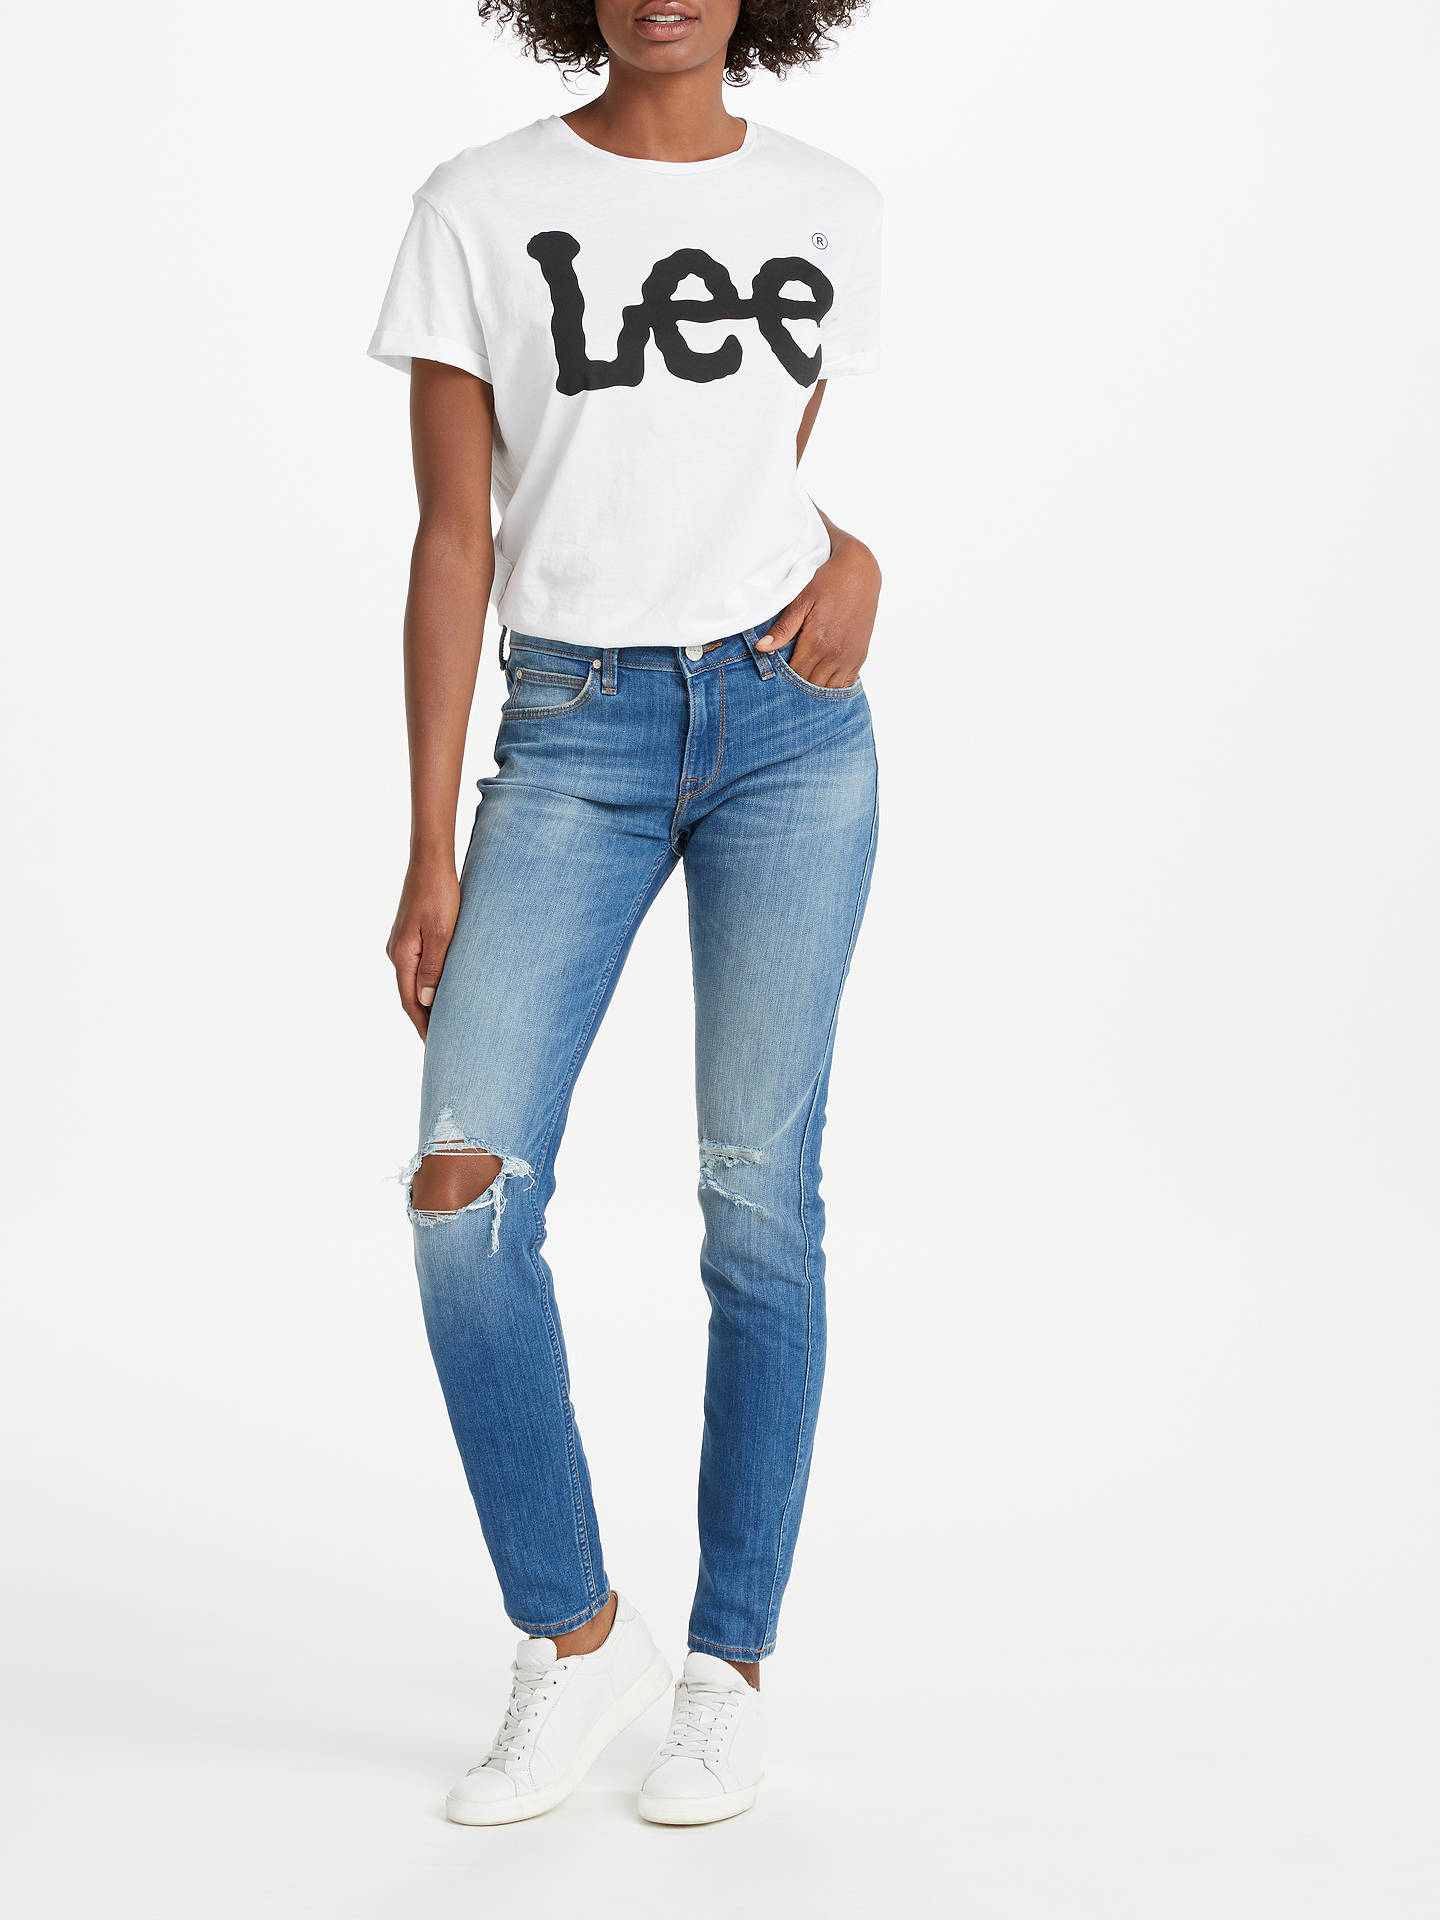 BuyLee Short Sleeve Logo T-Shirt, White, XS Online at johnlewis.com